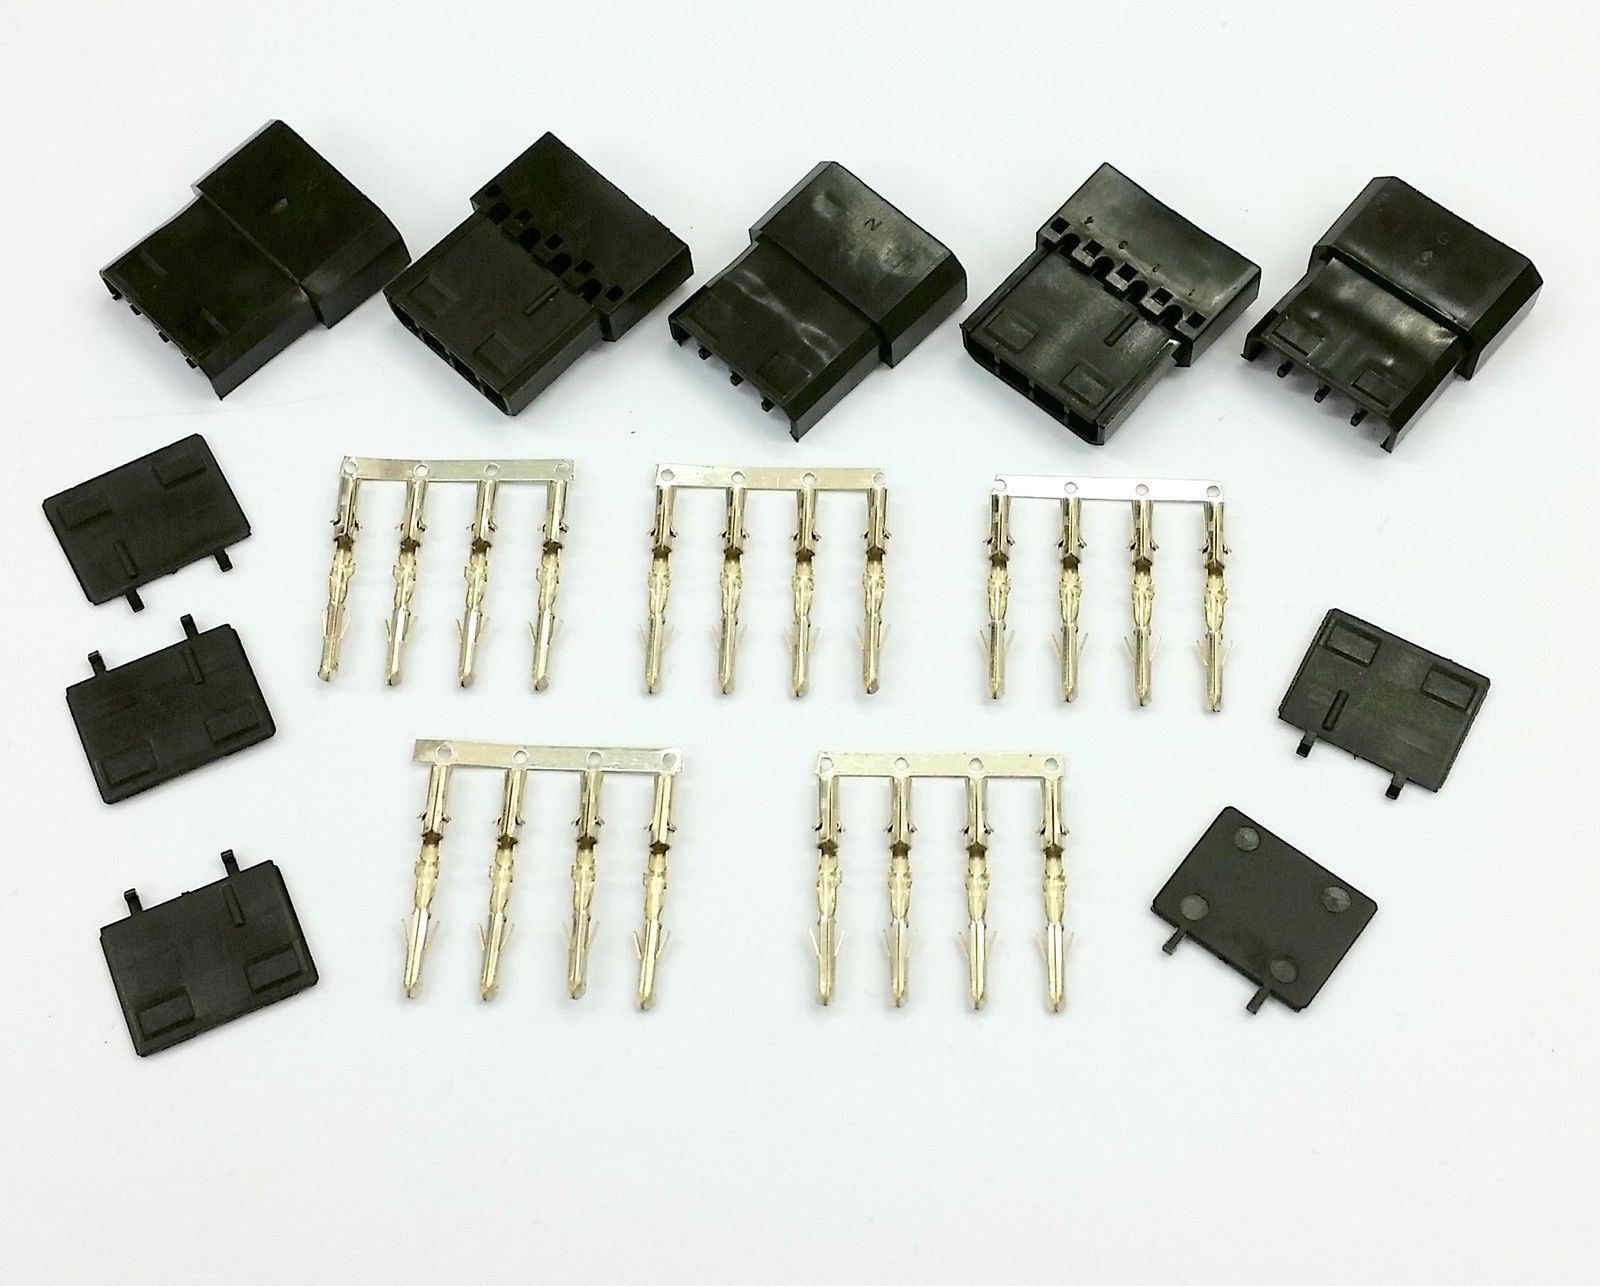 PK OF 5 - 4 PIN MOLEX PC PSU POWER CONNECTOR PASSTHRU MALE/FEMALE-BLACK INC PINS